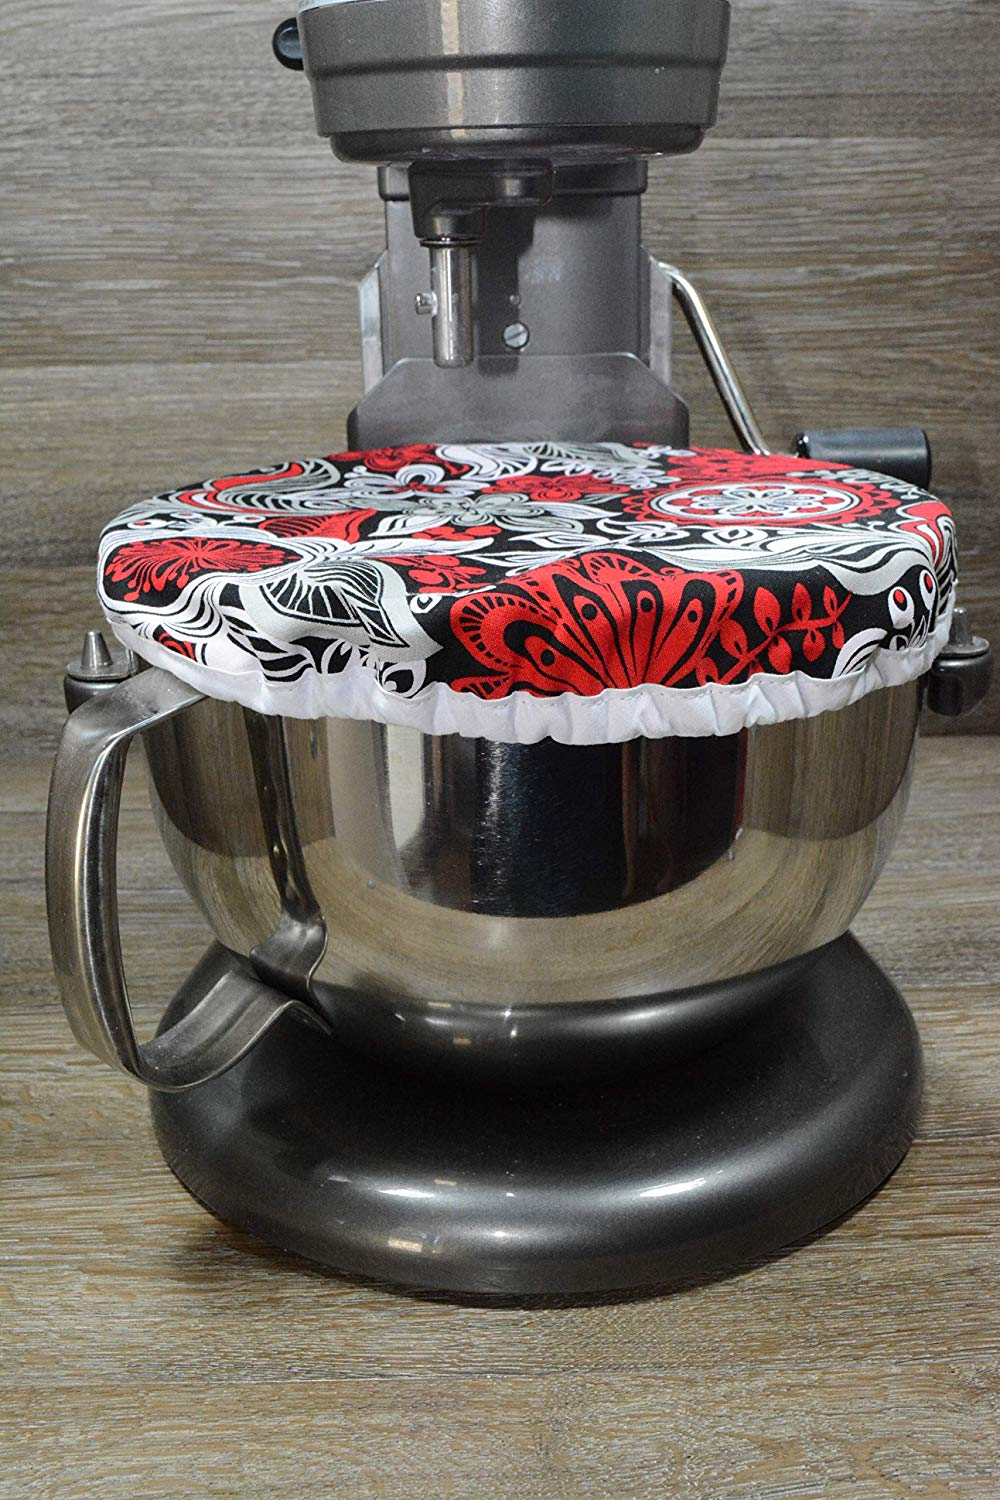 Eco-Friendly // Reusable // Medium Bowl Cover // Stand Mixer Cover // Rockin Red Floral